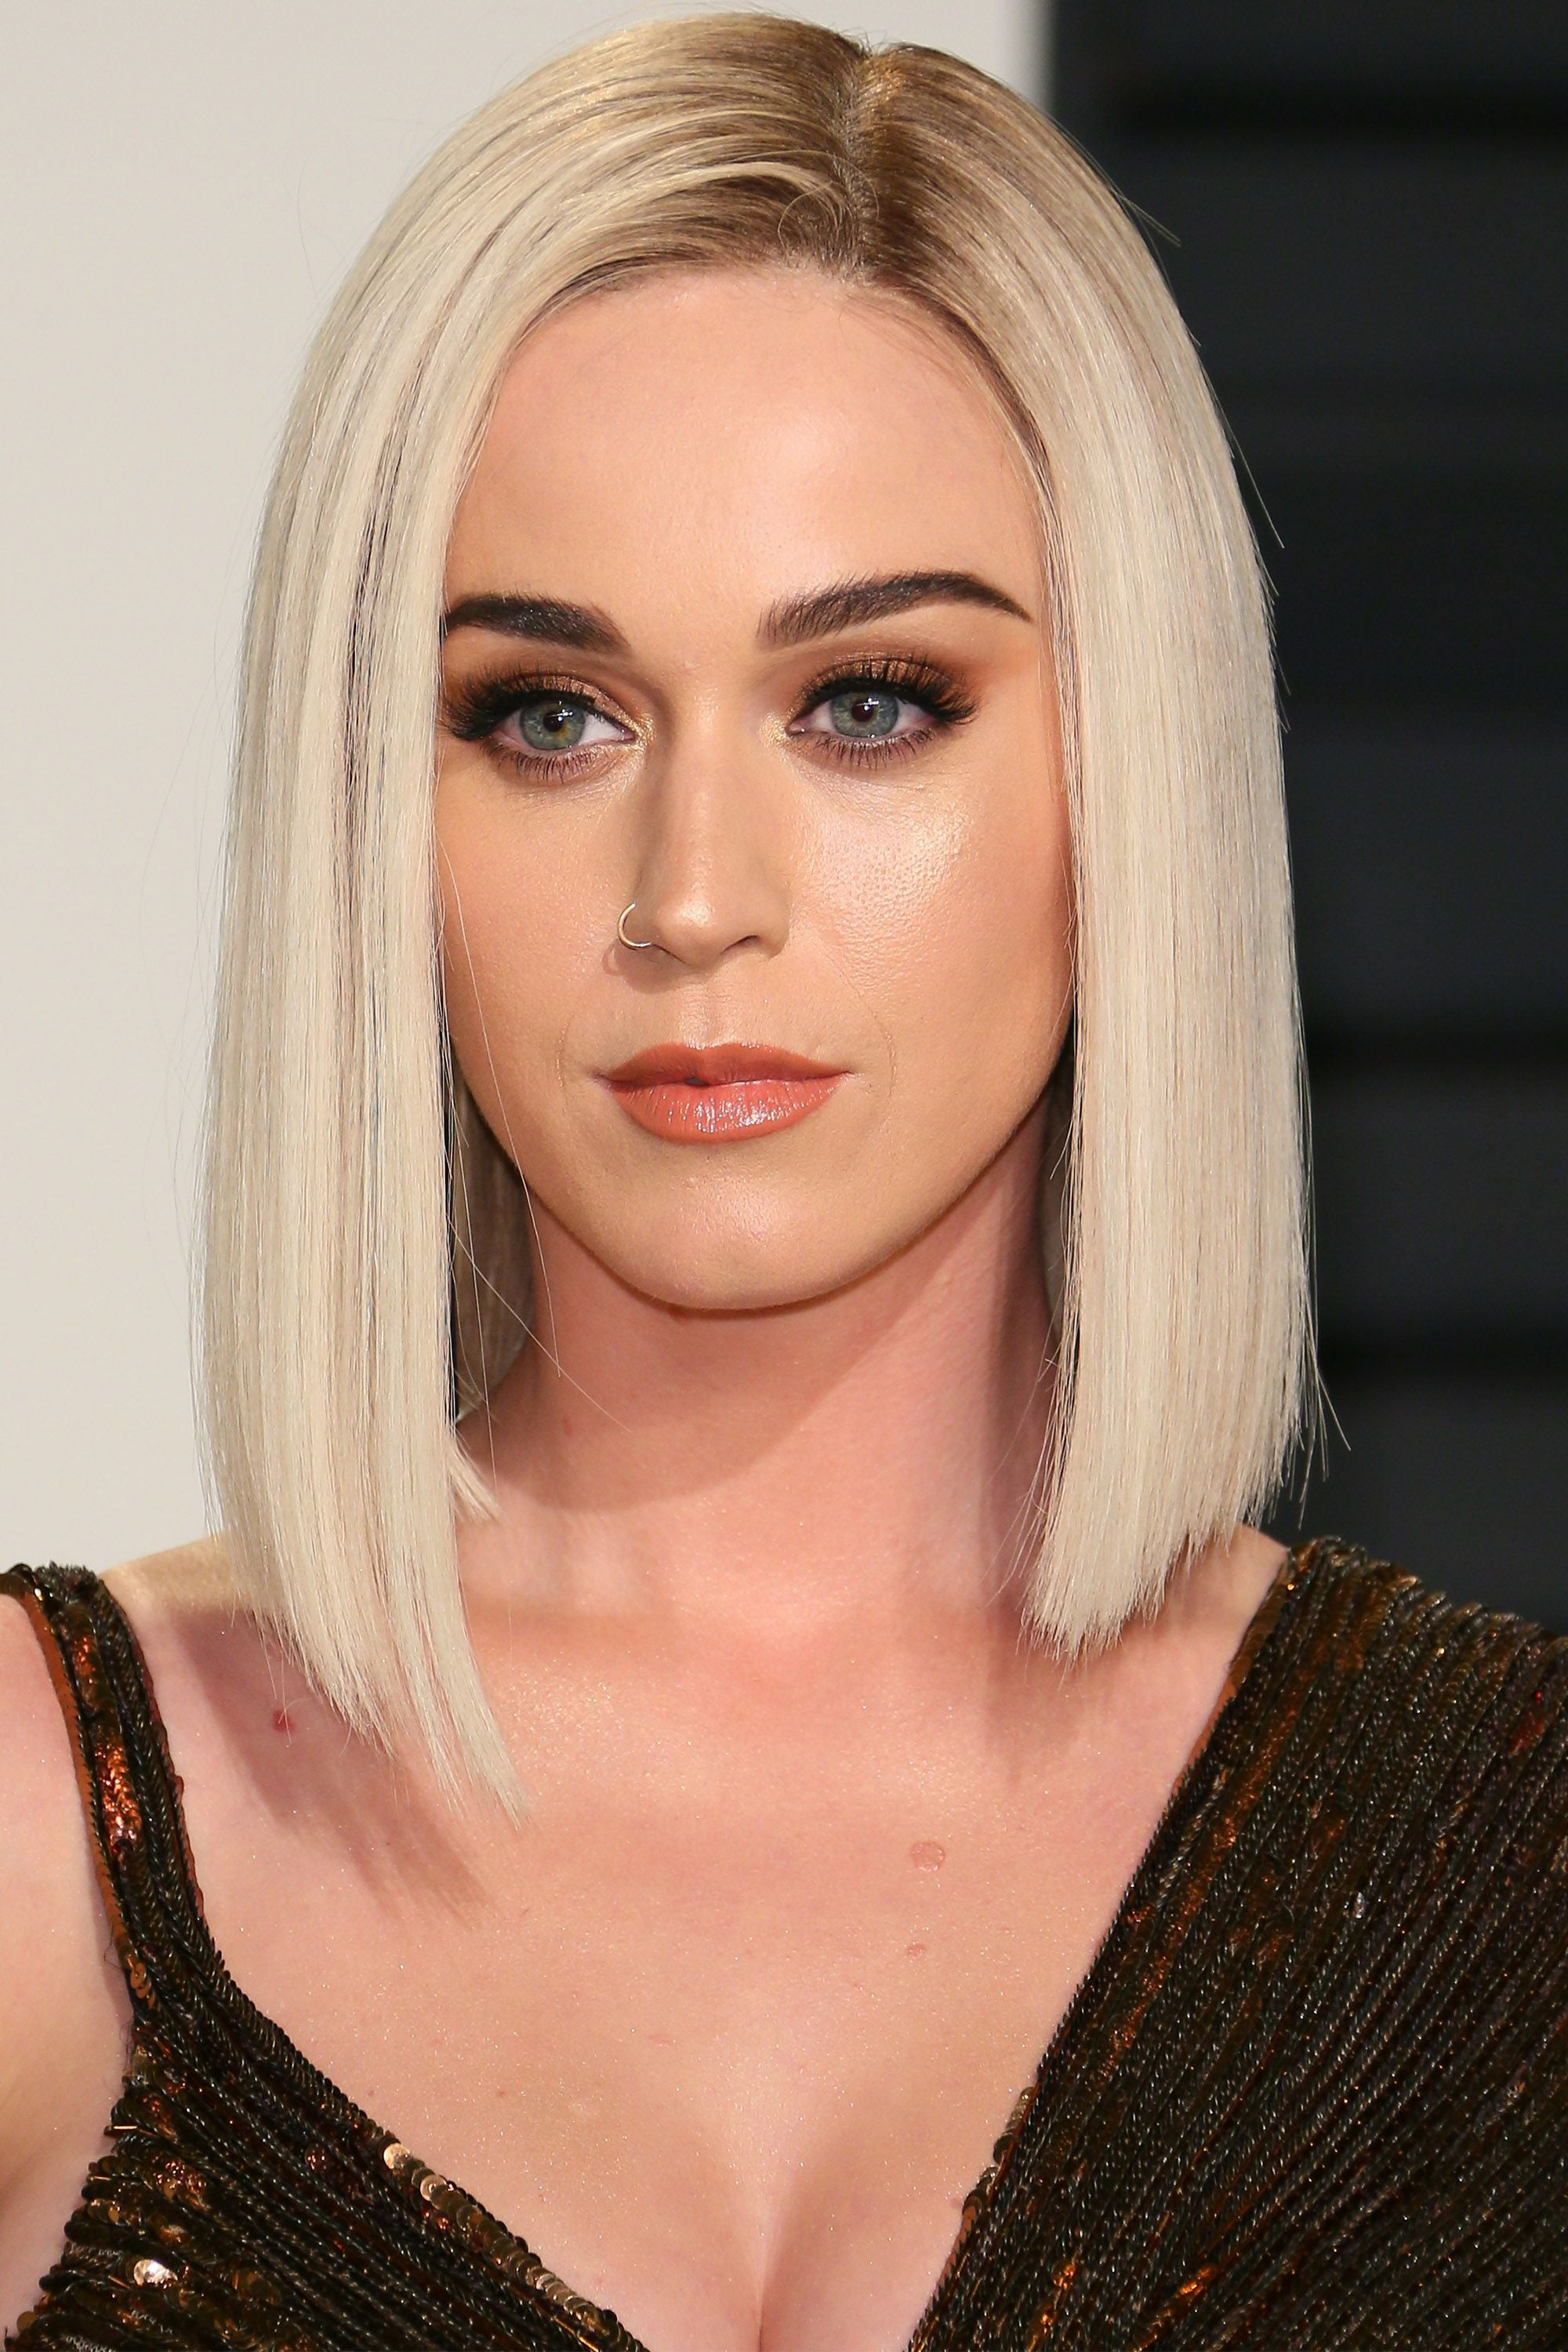 Katy Perry rocking the LOB Trend on red carpet